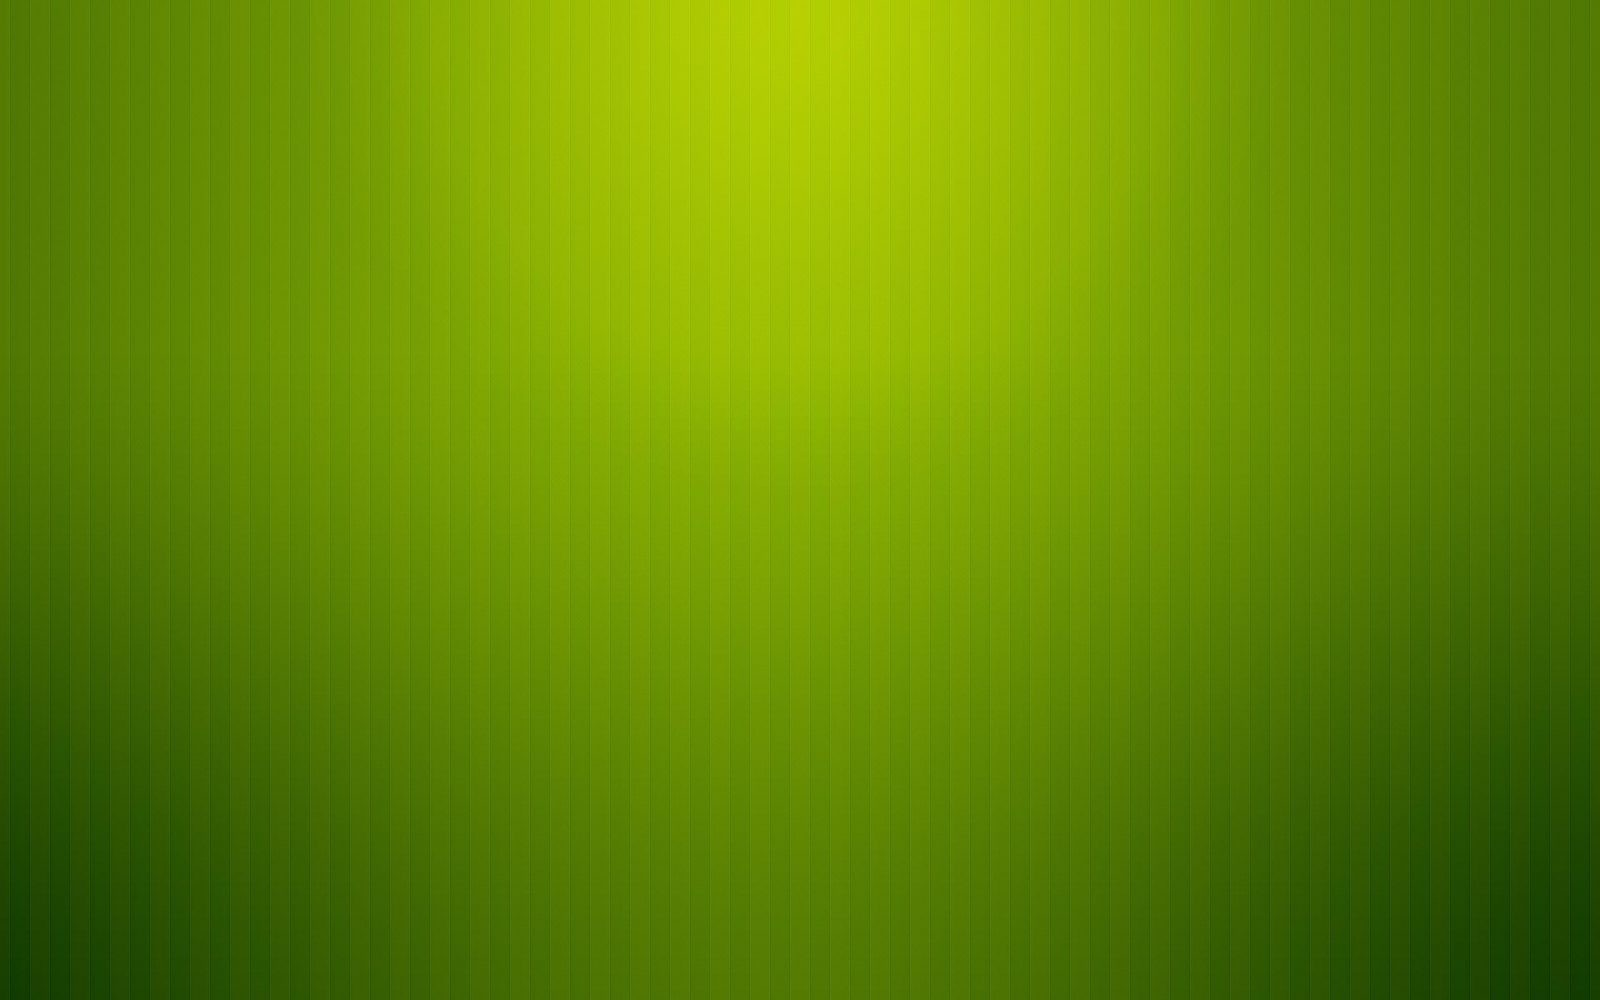 Free plain poster backgrounds